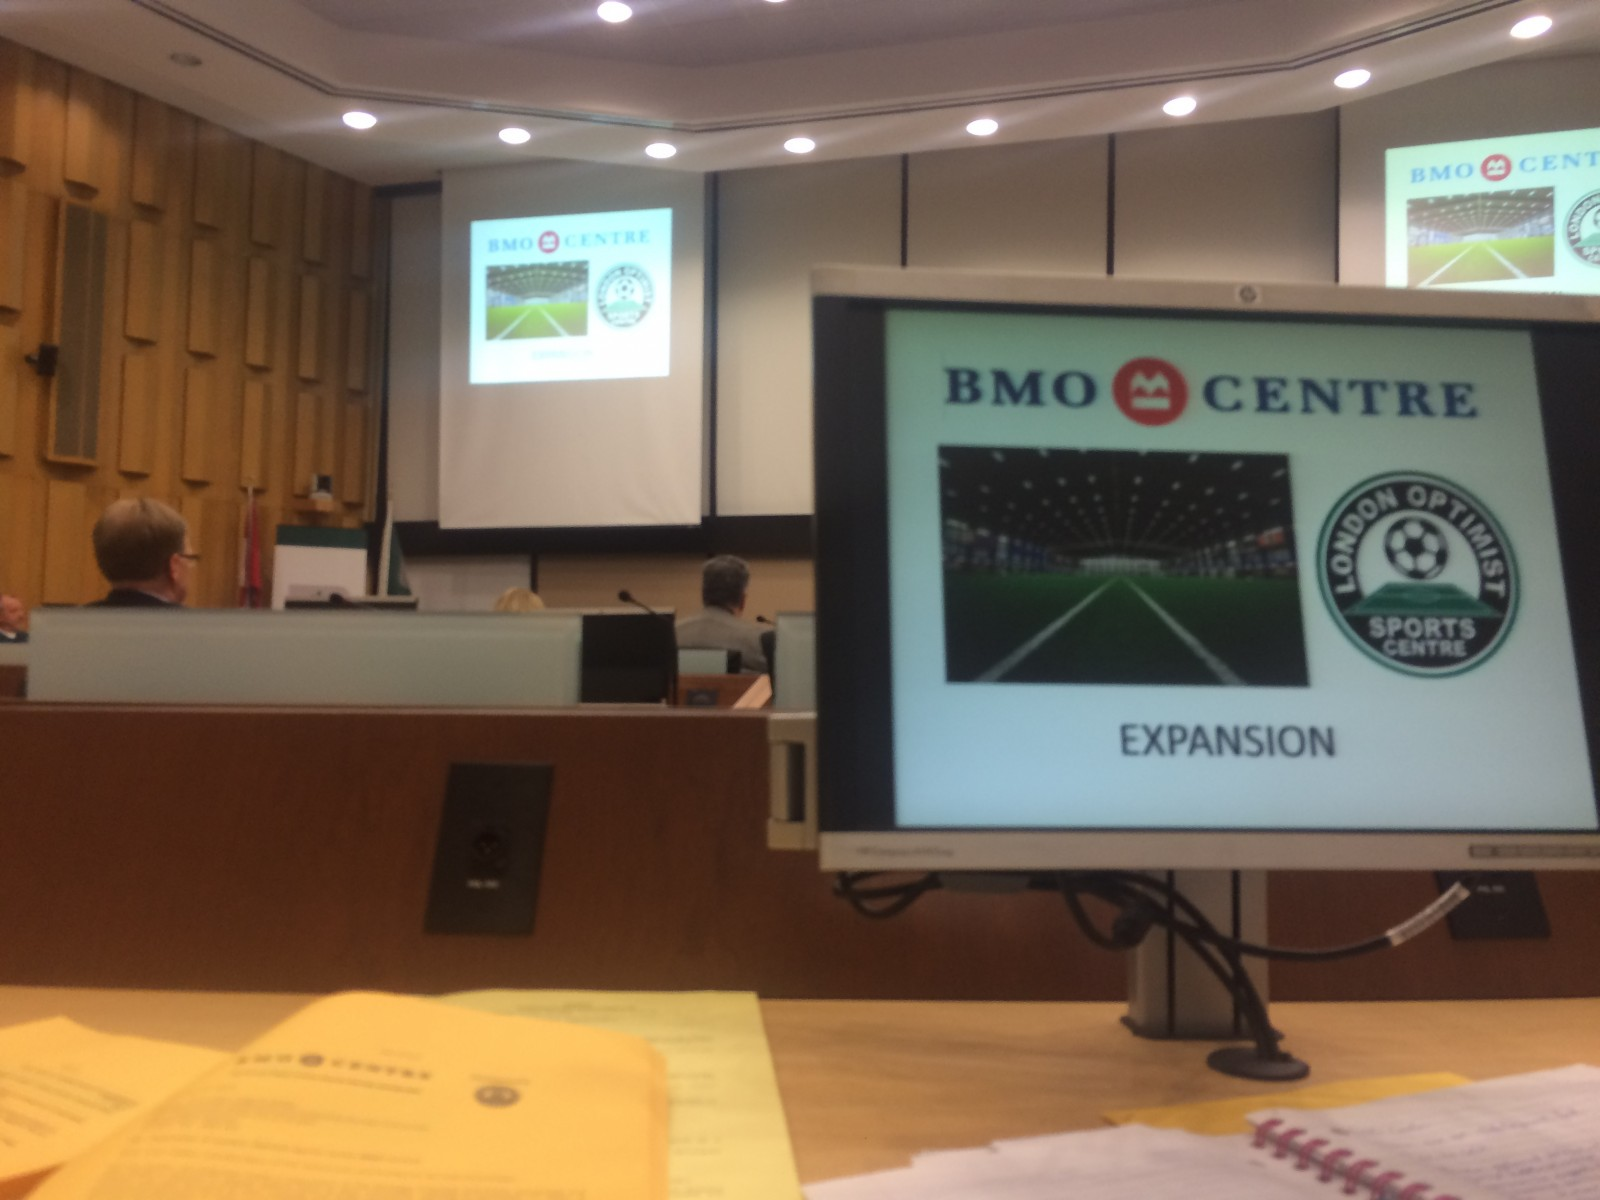 City's committee supports one time investment for BMO Centre expansion